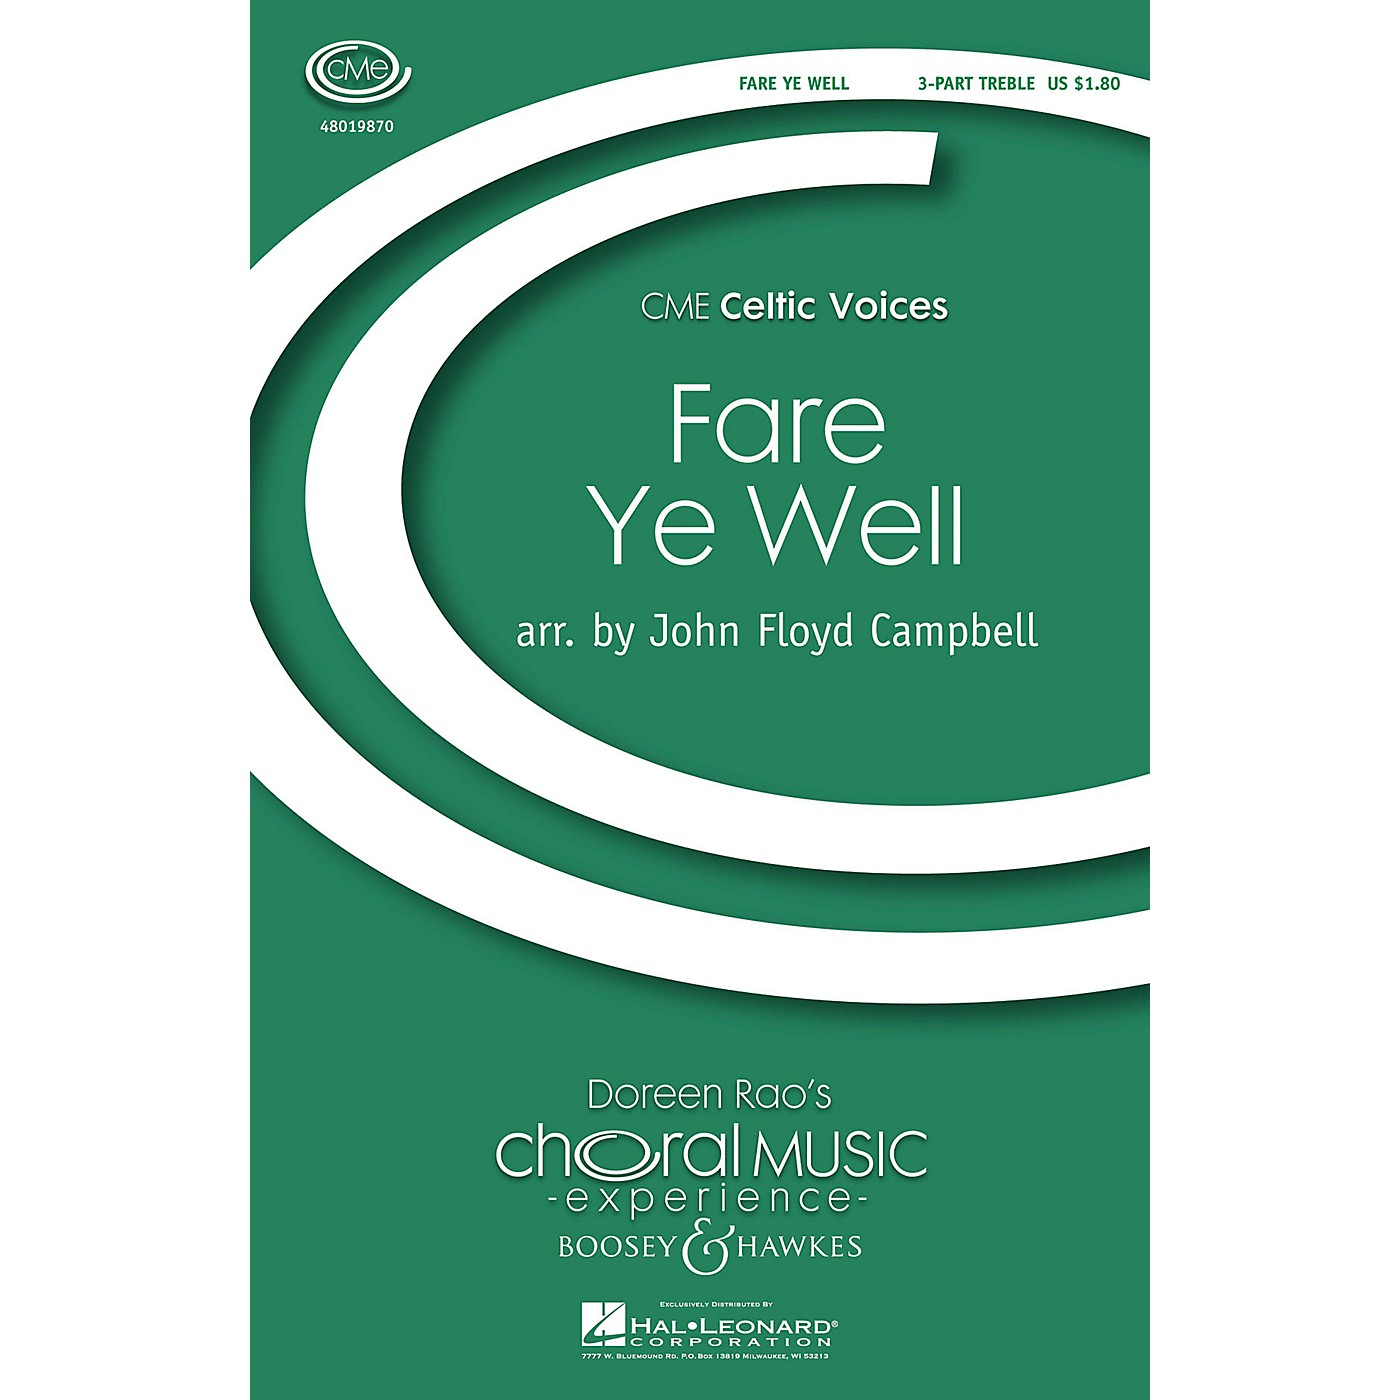 Boosey and Hawkes Fare Ye Weel (CME Celtic Voices) 3 Part Treble arranged by John Floyd Campbell thumbnail